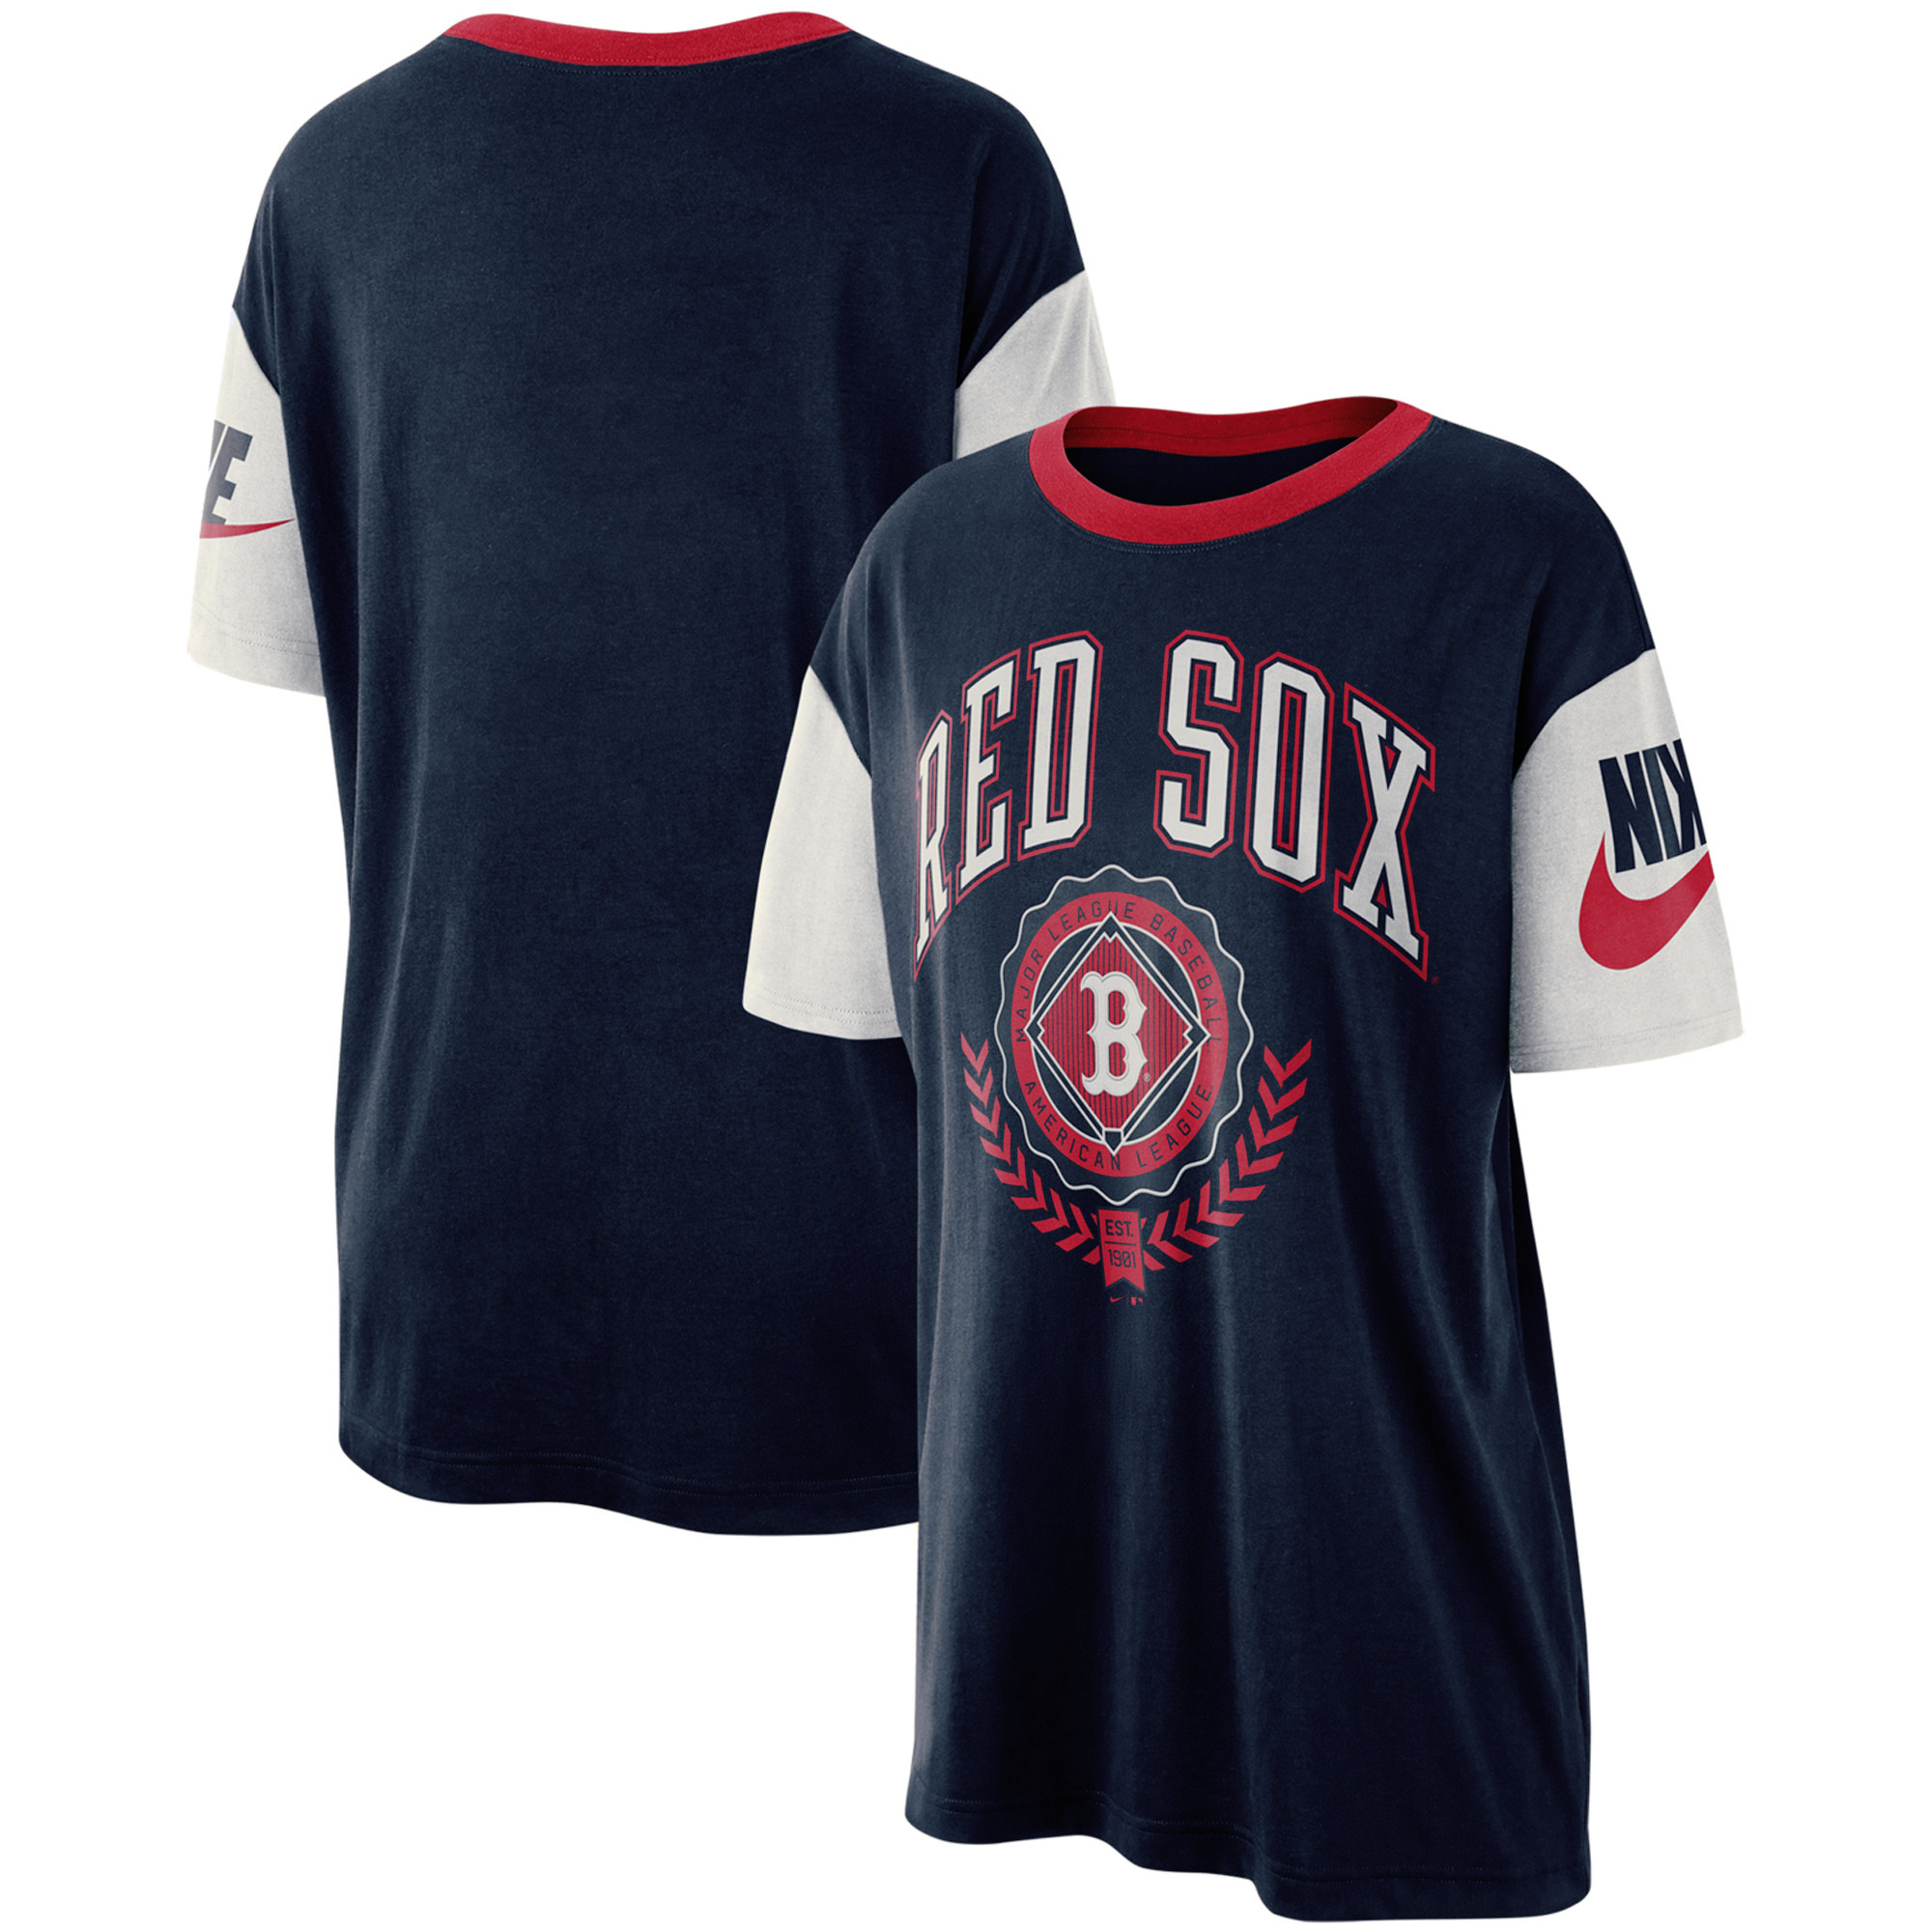 Boston Red Sox Nike Women's Walk-Off Boycut T-Shirt - Navy